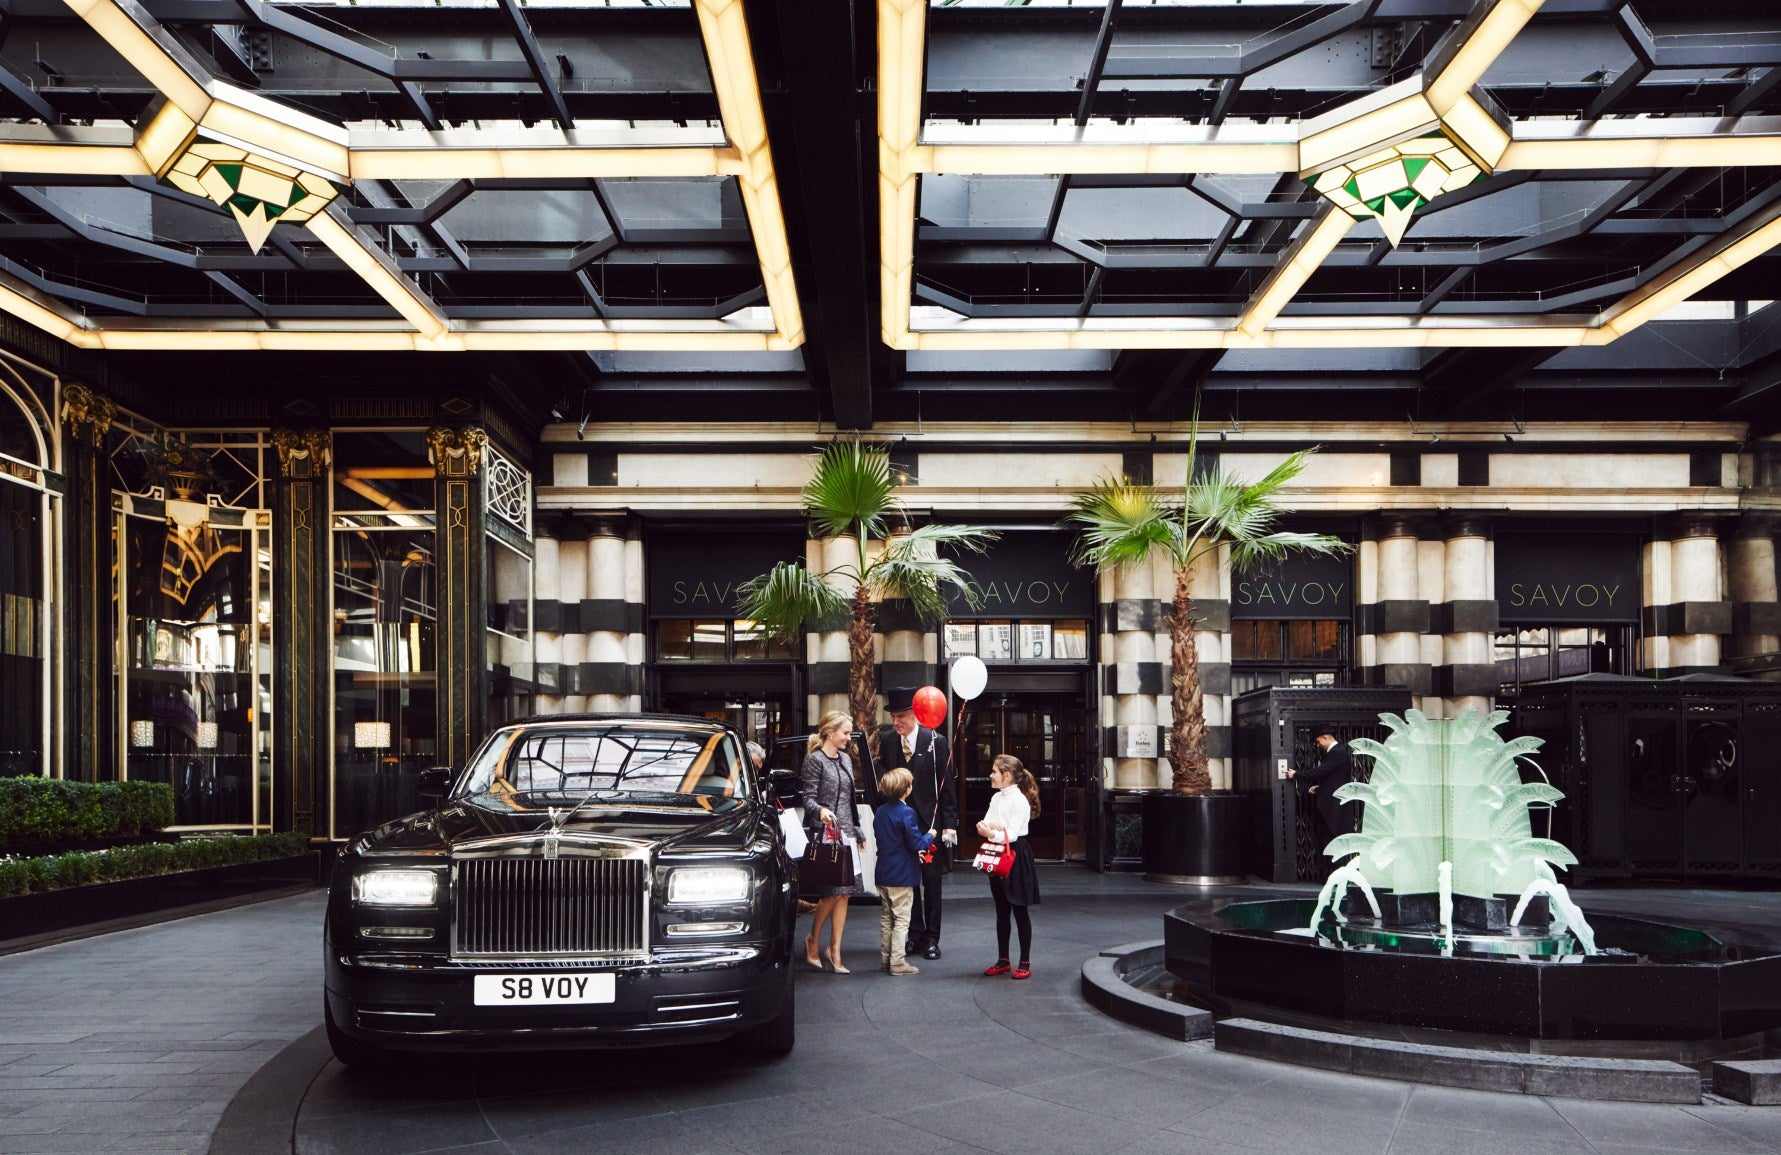 The Savoy | Art Deco Hotels | Read more in the LuxDeco Style Guide